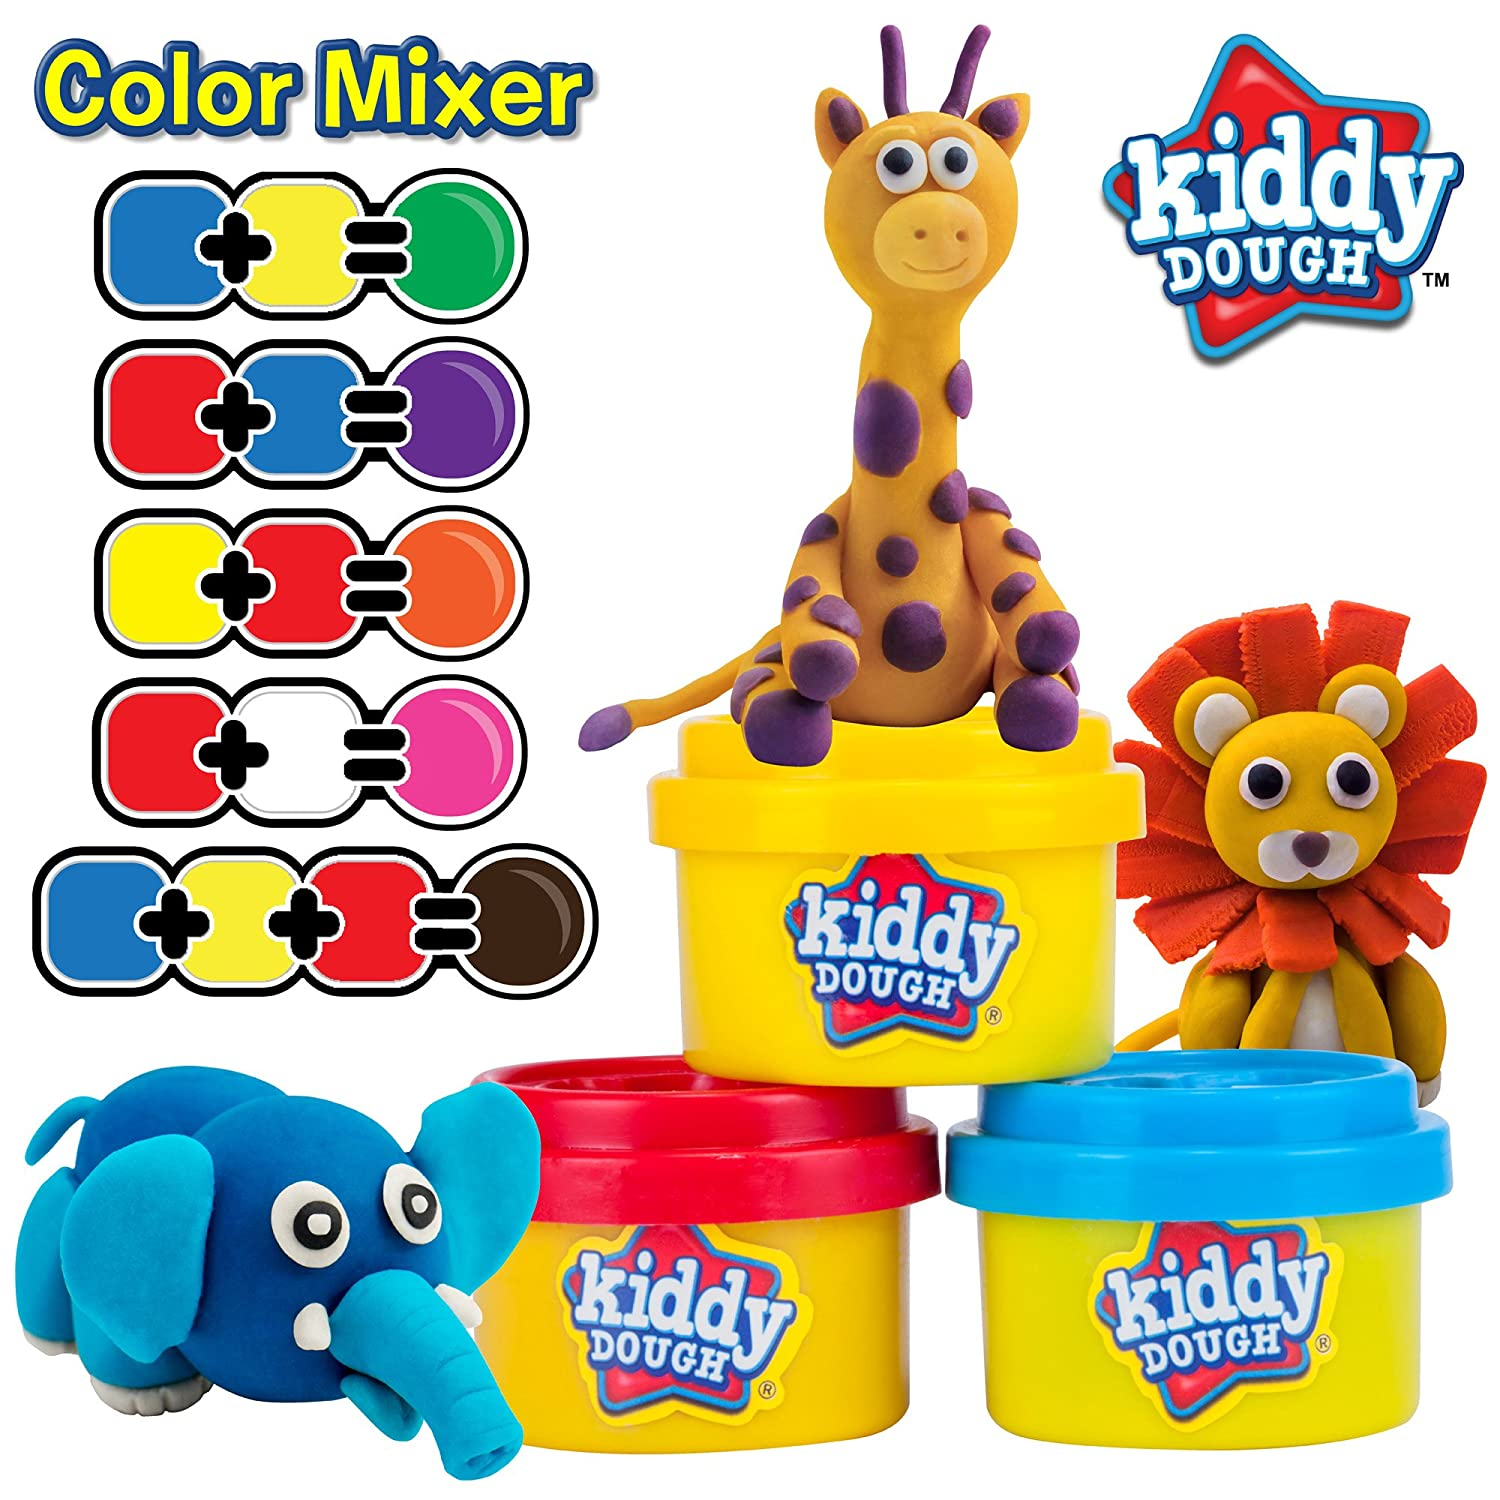 40 Shapes /& Numbers Dough Tools Includes Molded Animal Shaped Lids Holiday Edition - 1oz Tubs - 40oz Total KIDDY DOUGH 40 Pack of Birthday Party Favors Bulk Dough /& Clay Pack Creative Kids